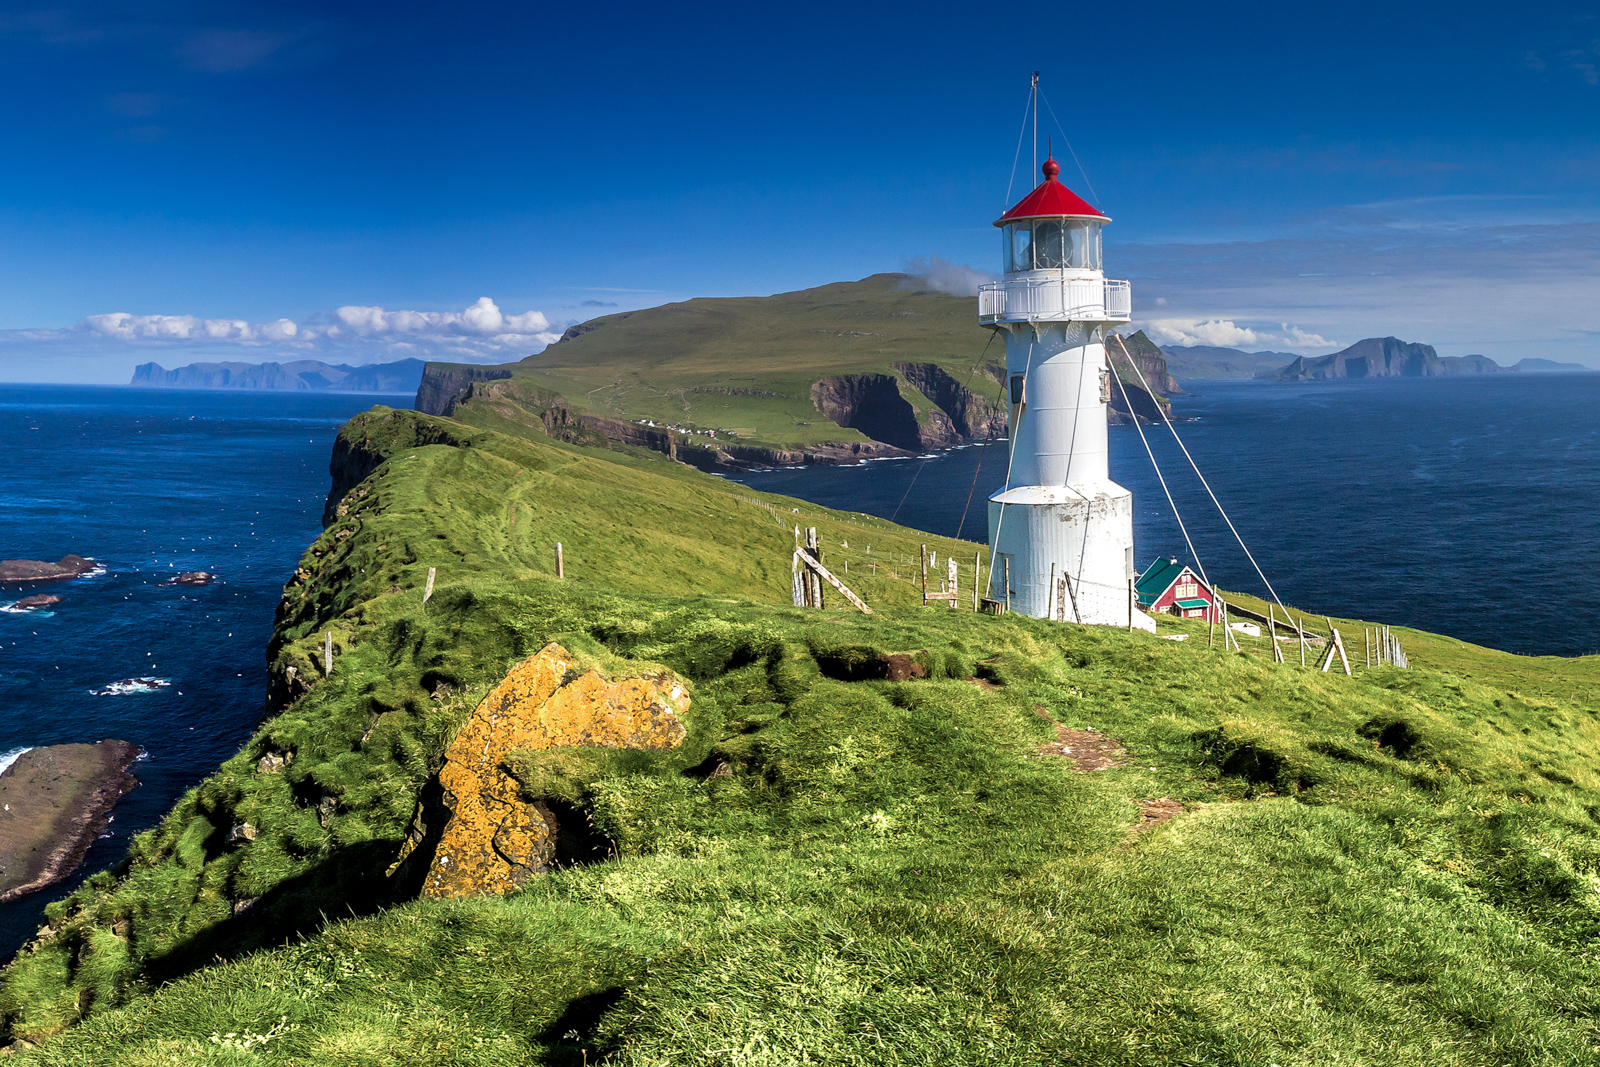 Things to do in Faroe Islands Travel. Panoramic view of Old lighthouse on the beautiful island Mykines. Best time to visit Faroe Islands.